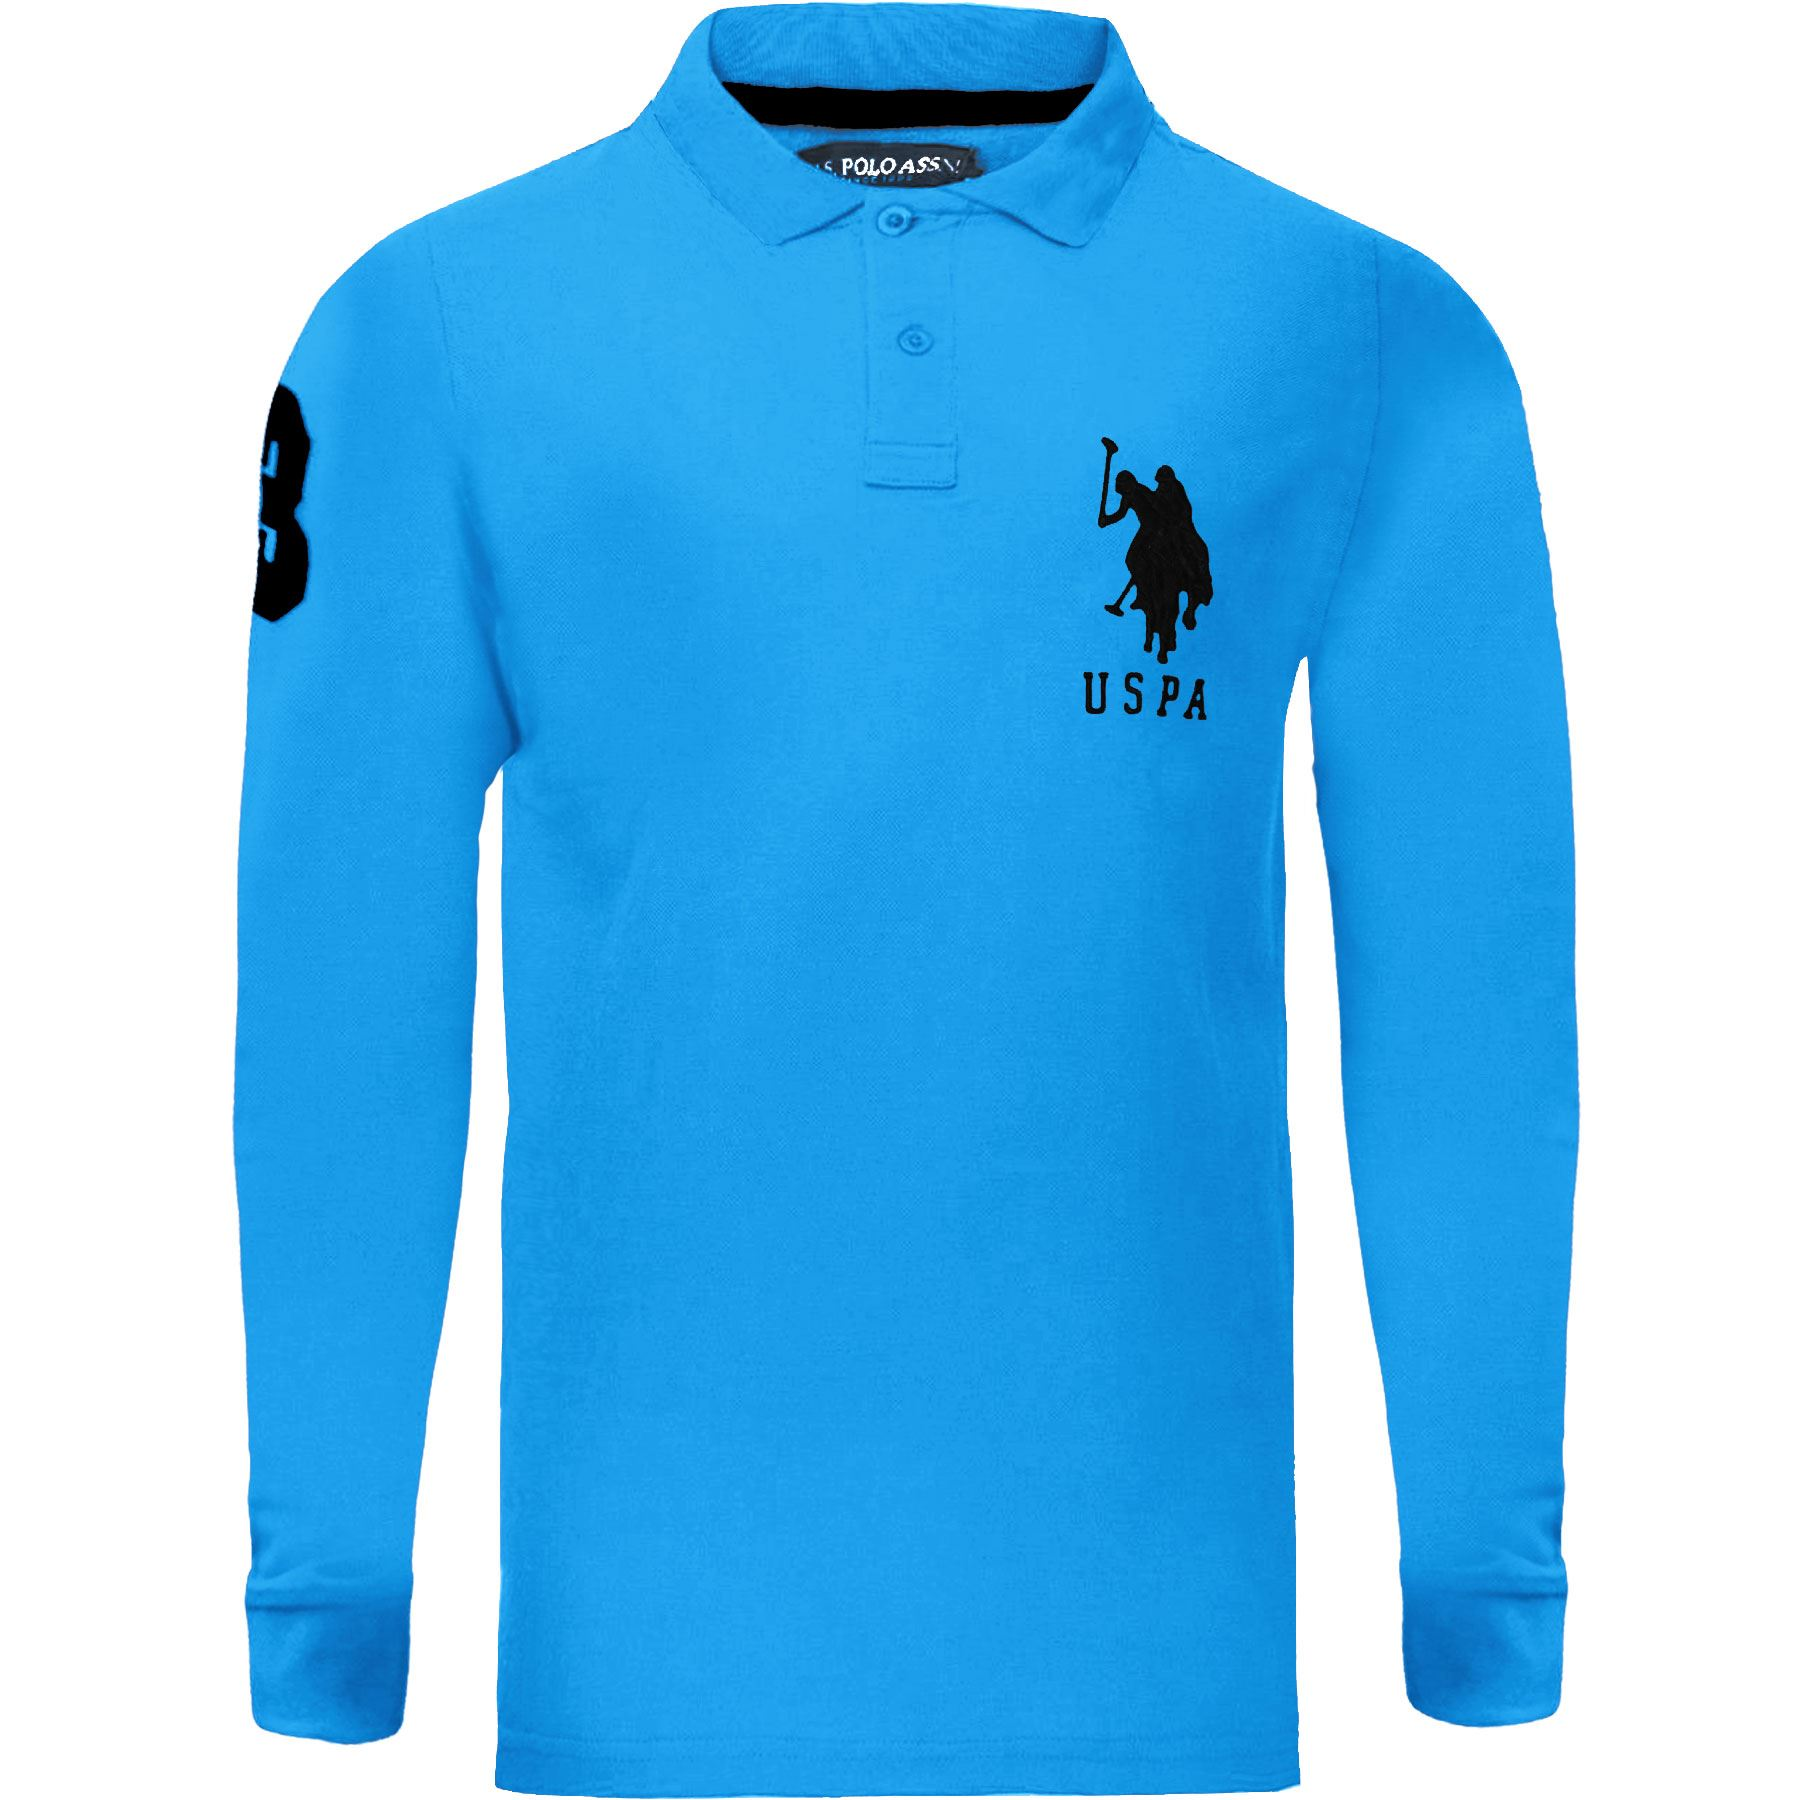 New Mens Long Sleeve Polo Shirt Top Branded Big Pony